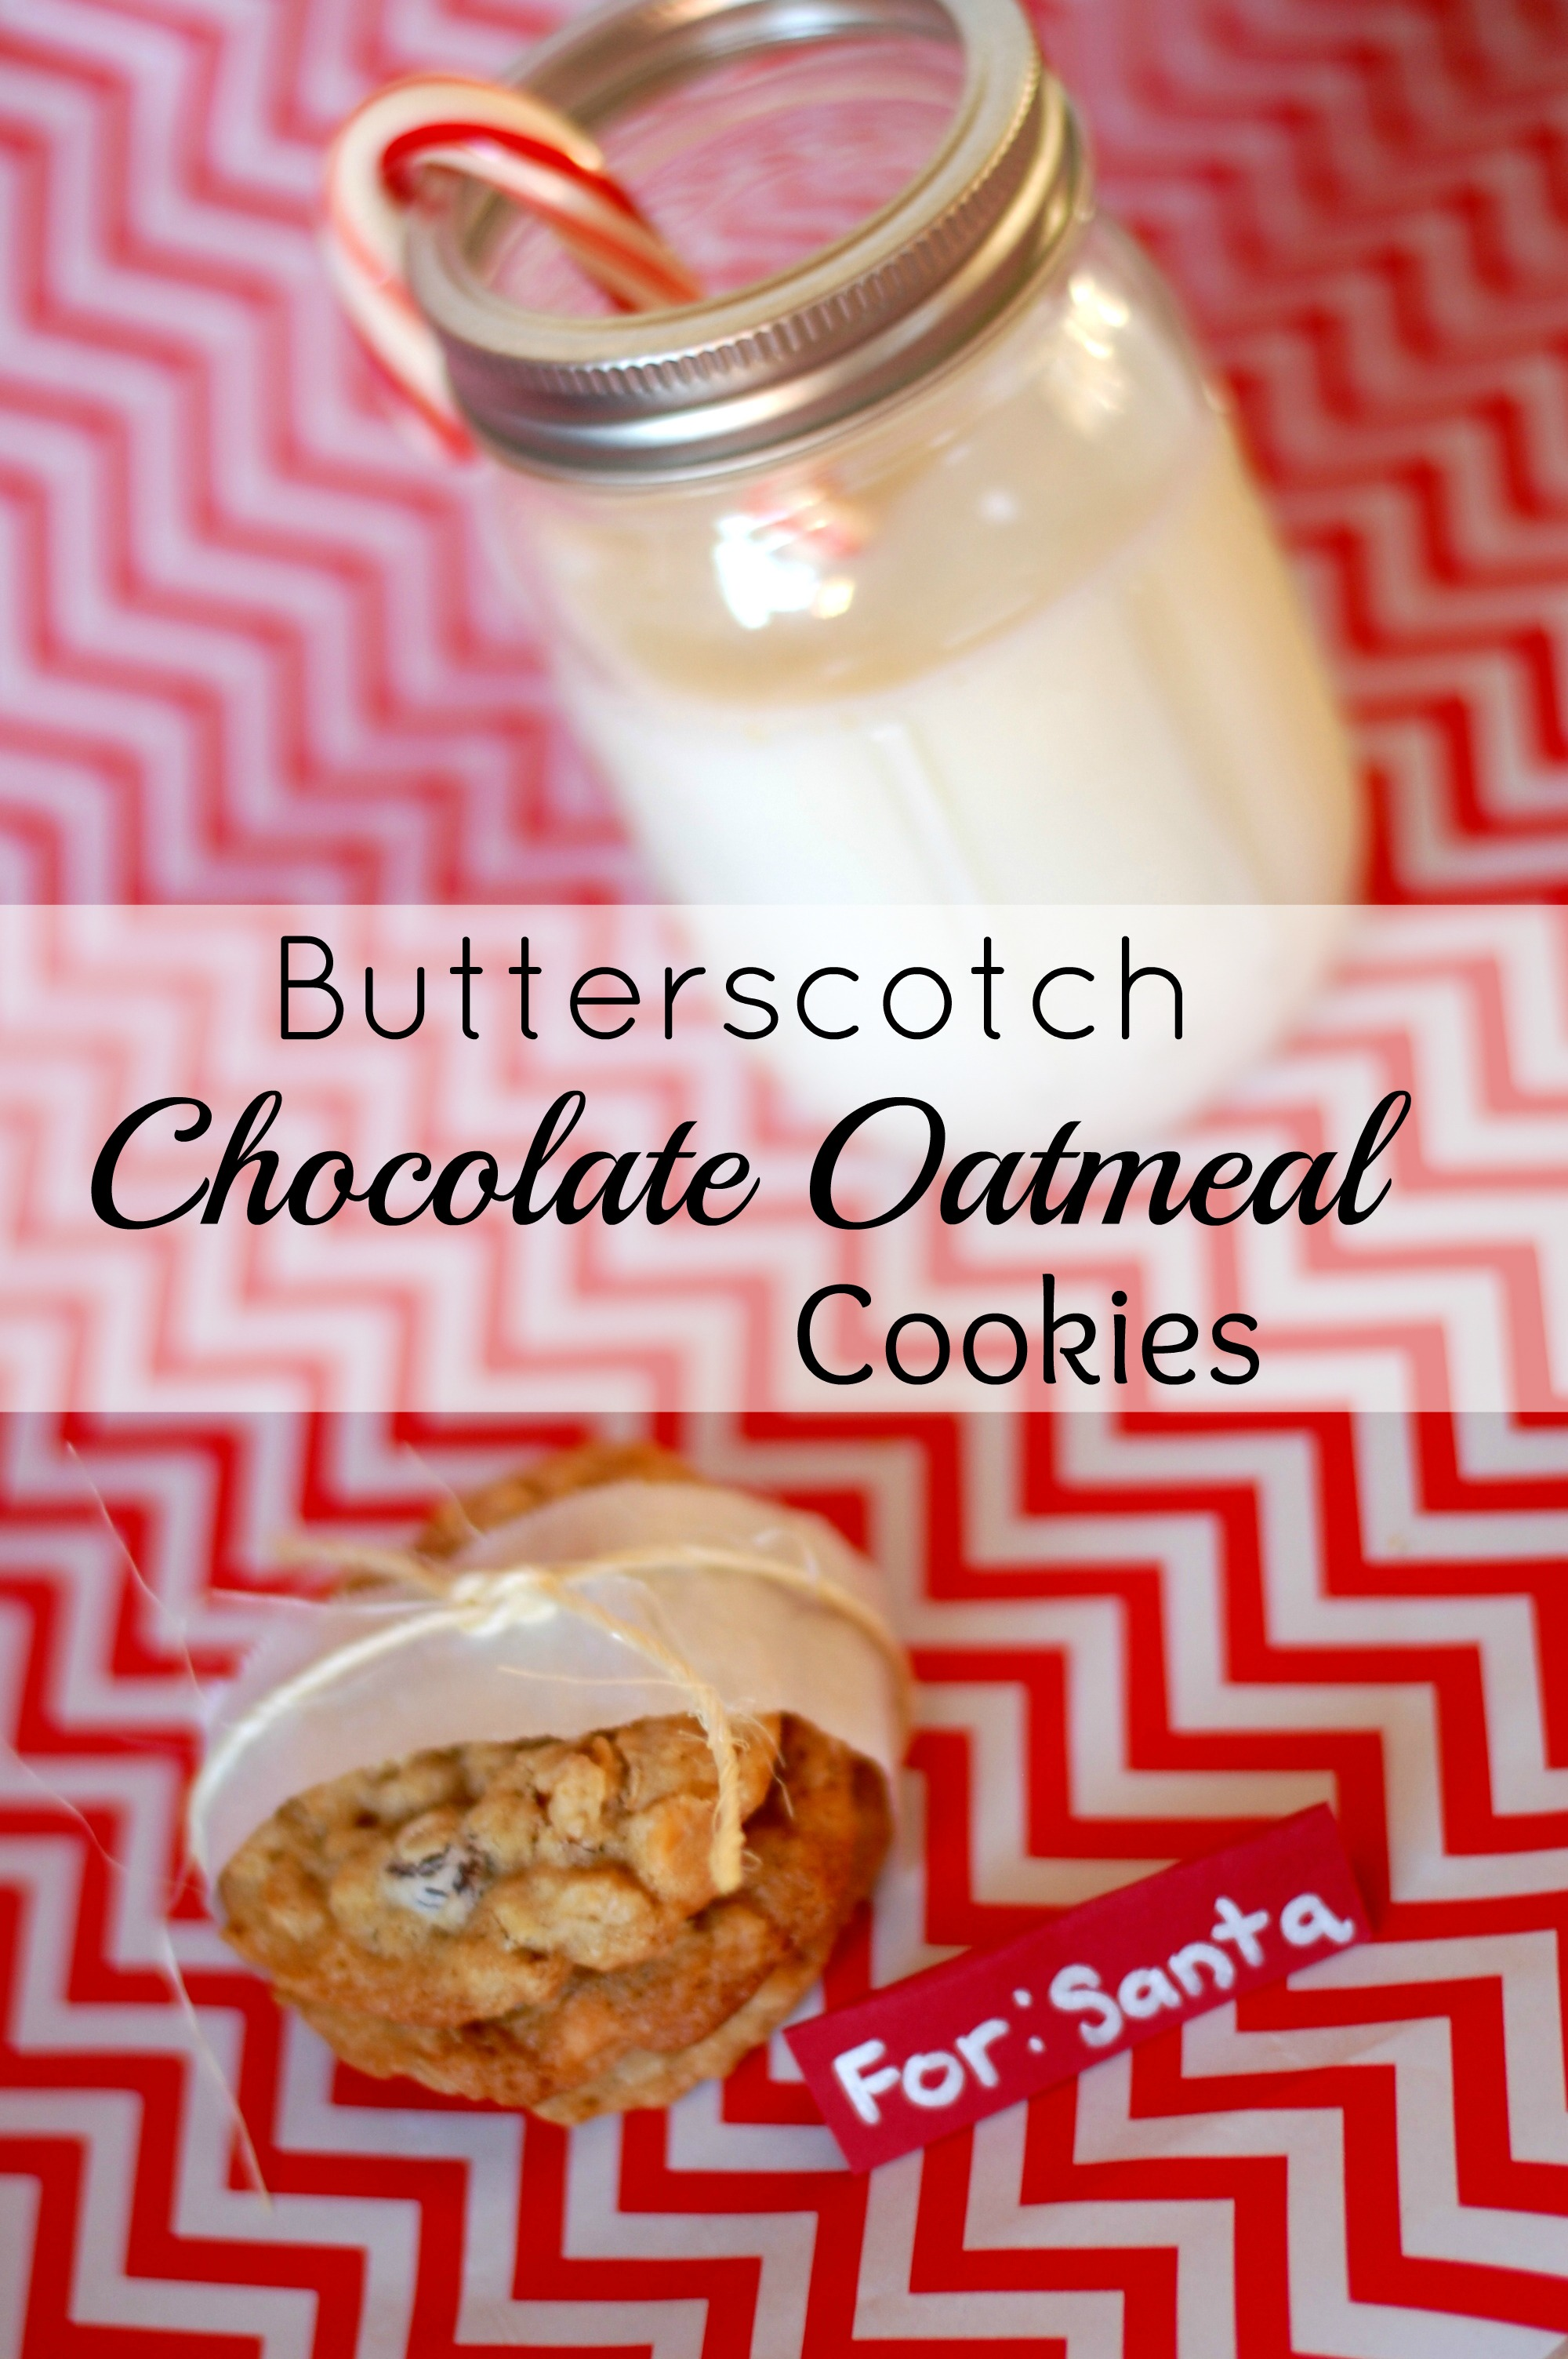 Oatmeal Butterscotch Chocolate Chip Cookies Recipe